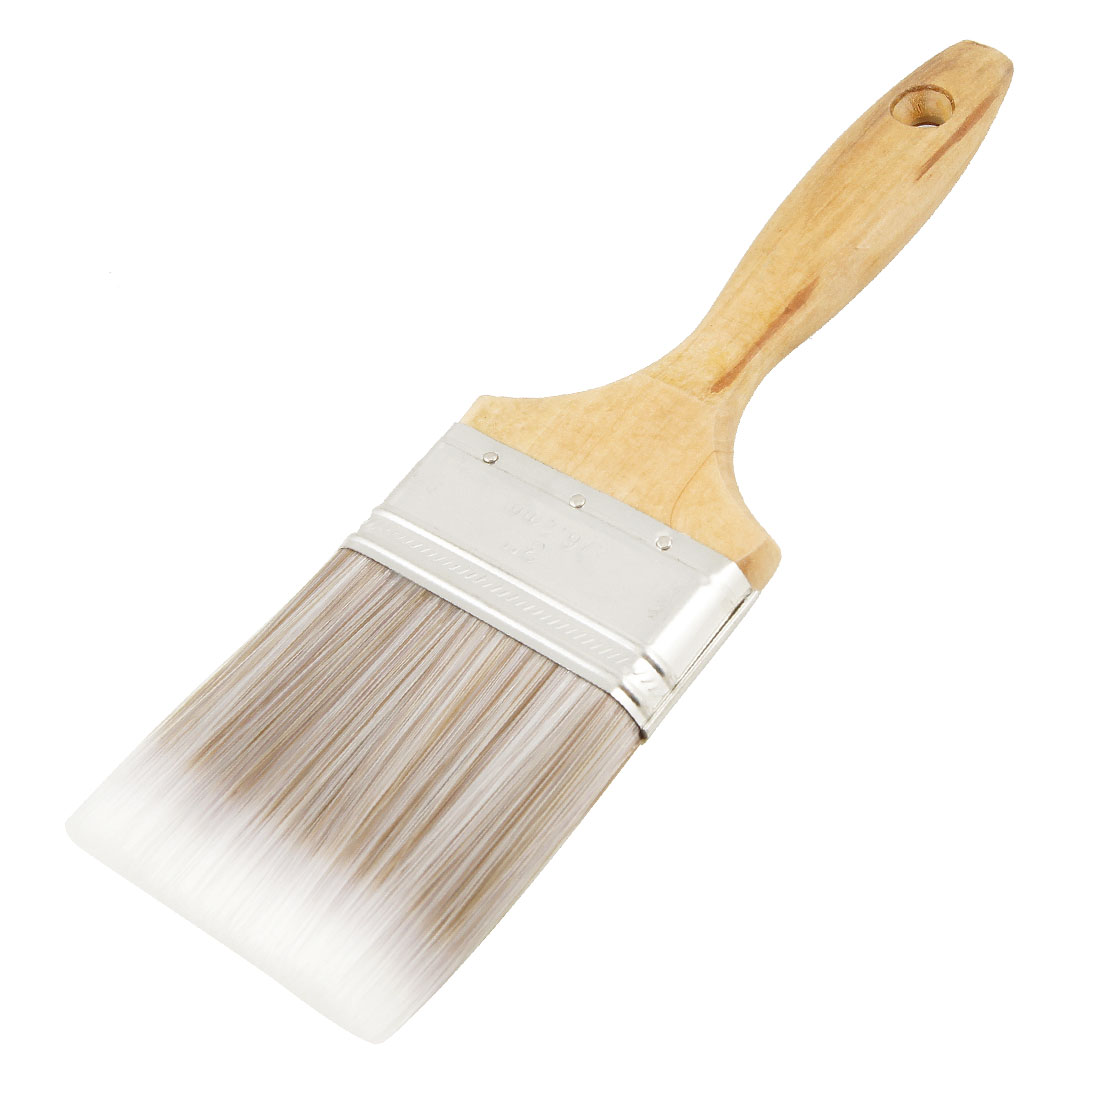 "3"" Width Khaki White Bristle Wooden Handle Paint Brush Painting Tool"